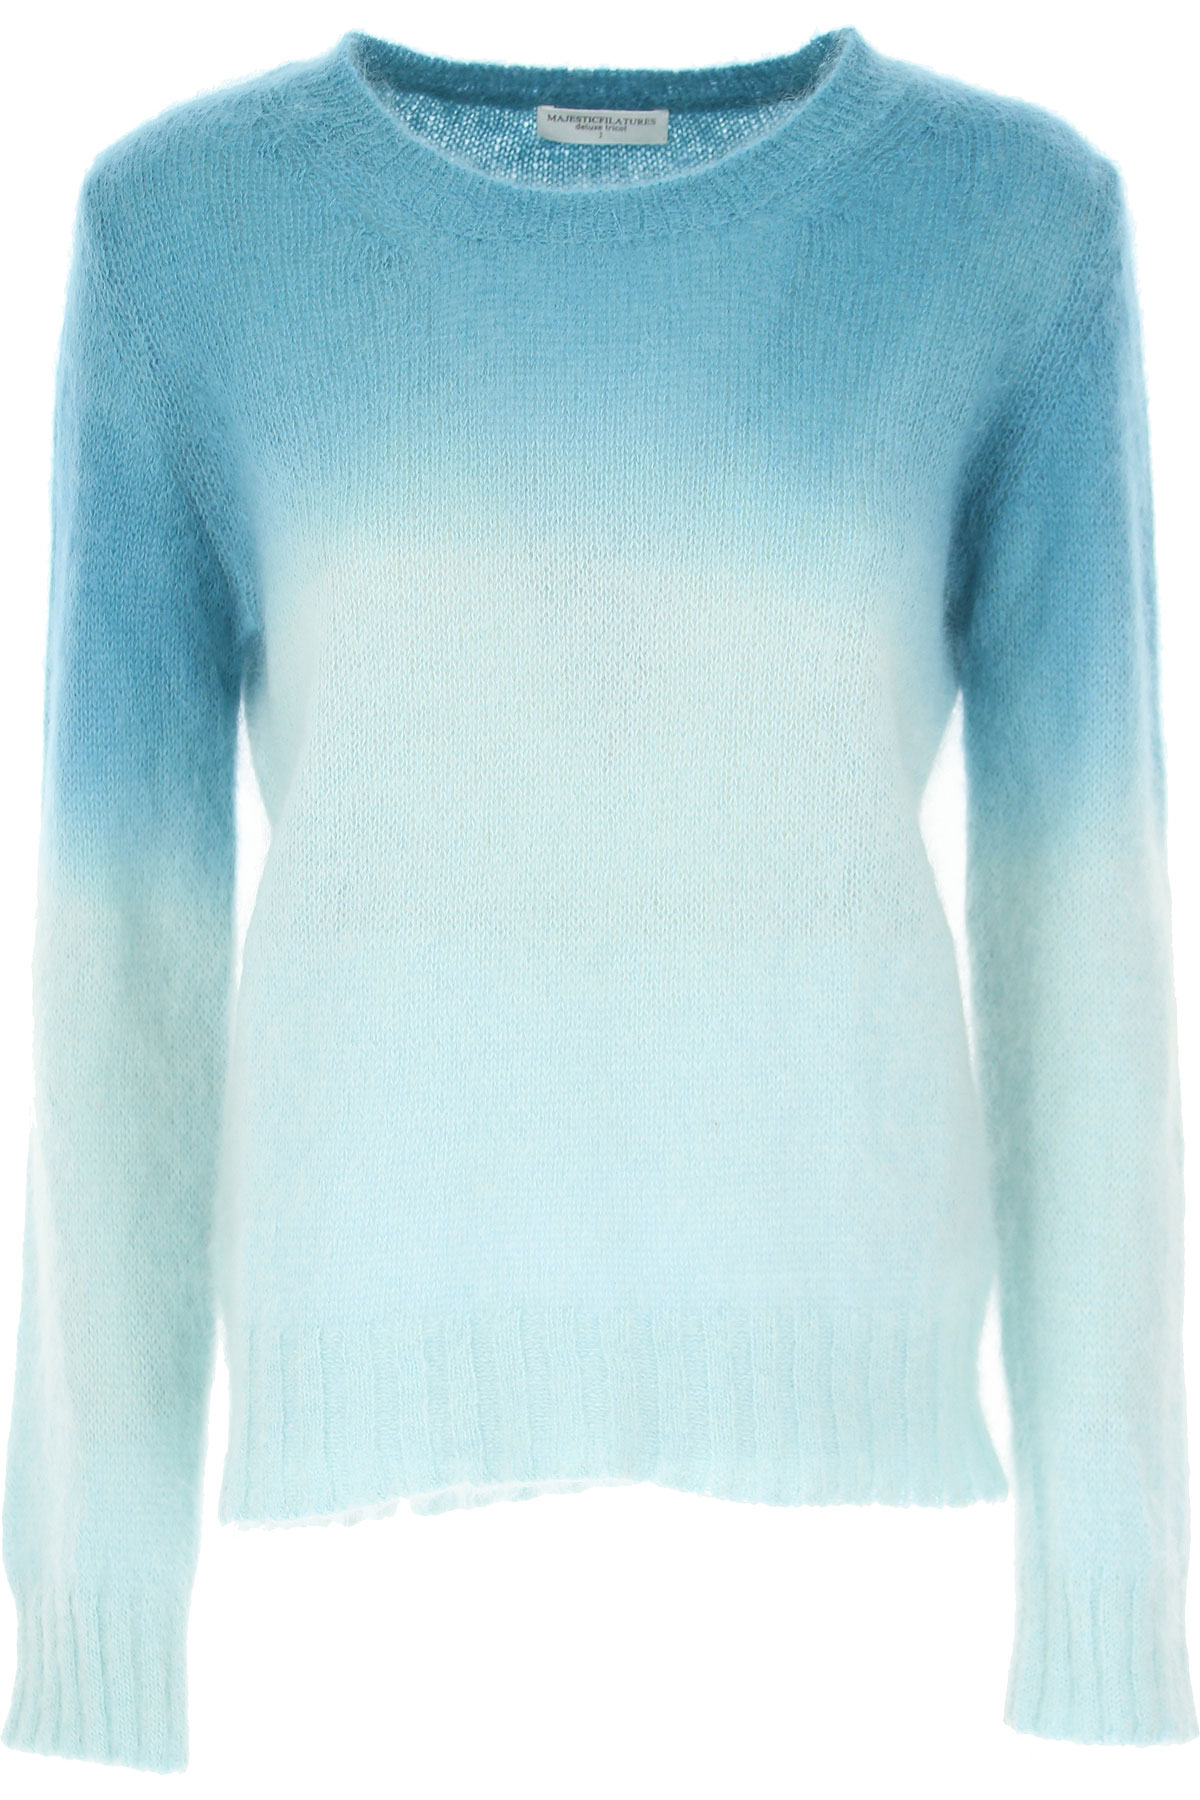 Image of Majestic Filatures Sweater for Women Jumper, Turquoise, superkid mohair, 2017, 4 6 8